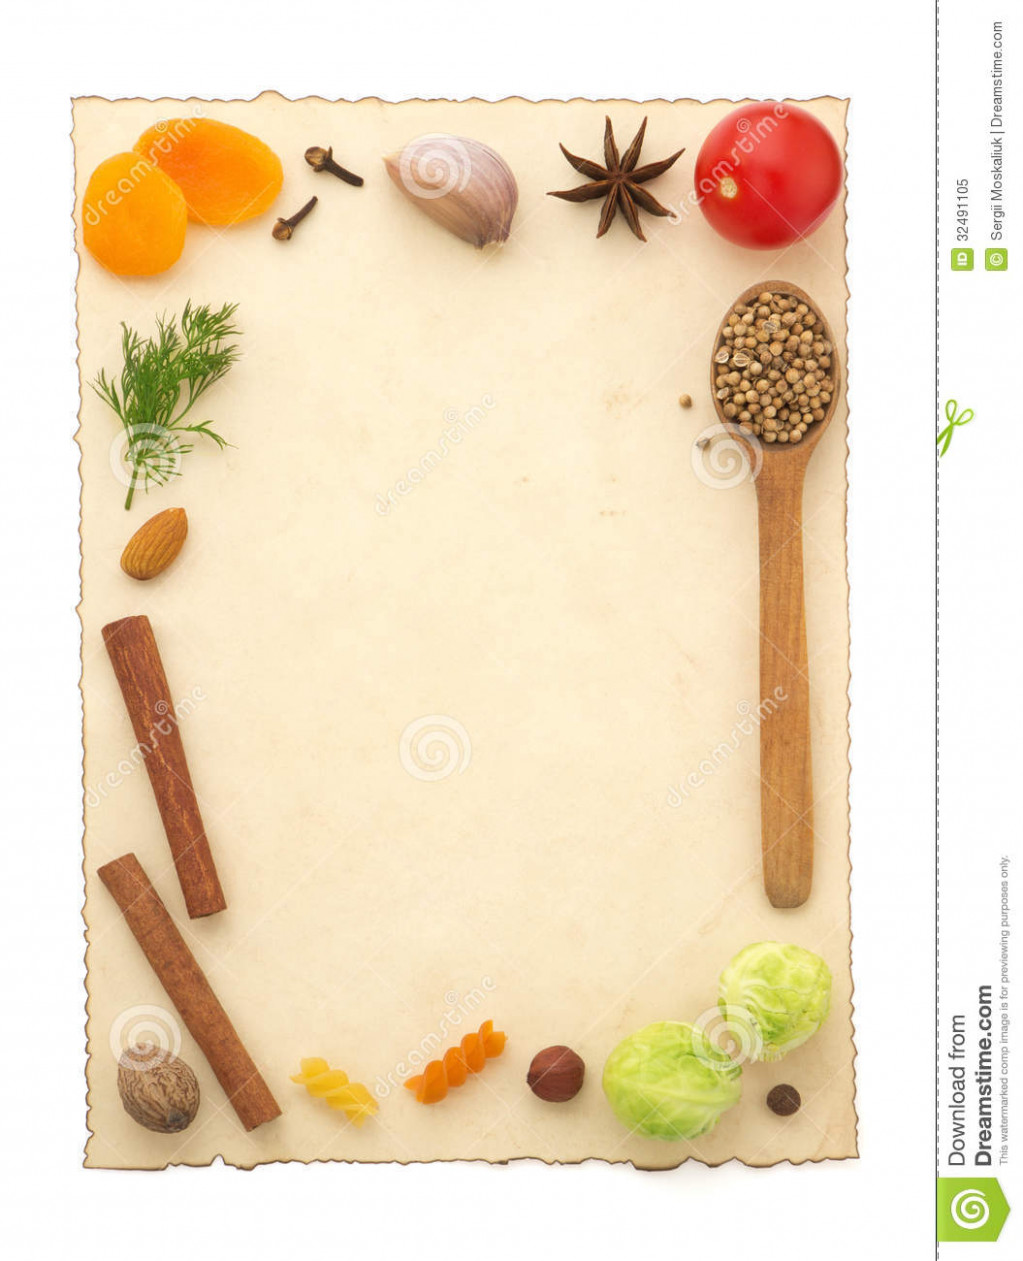 Food Ingredients And Recipe Pape Stock Image - Image of ..